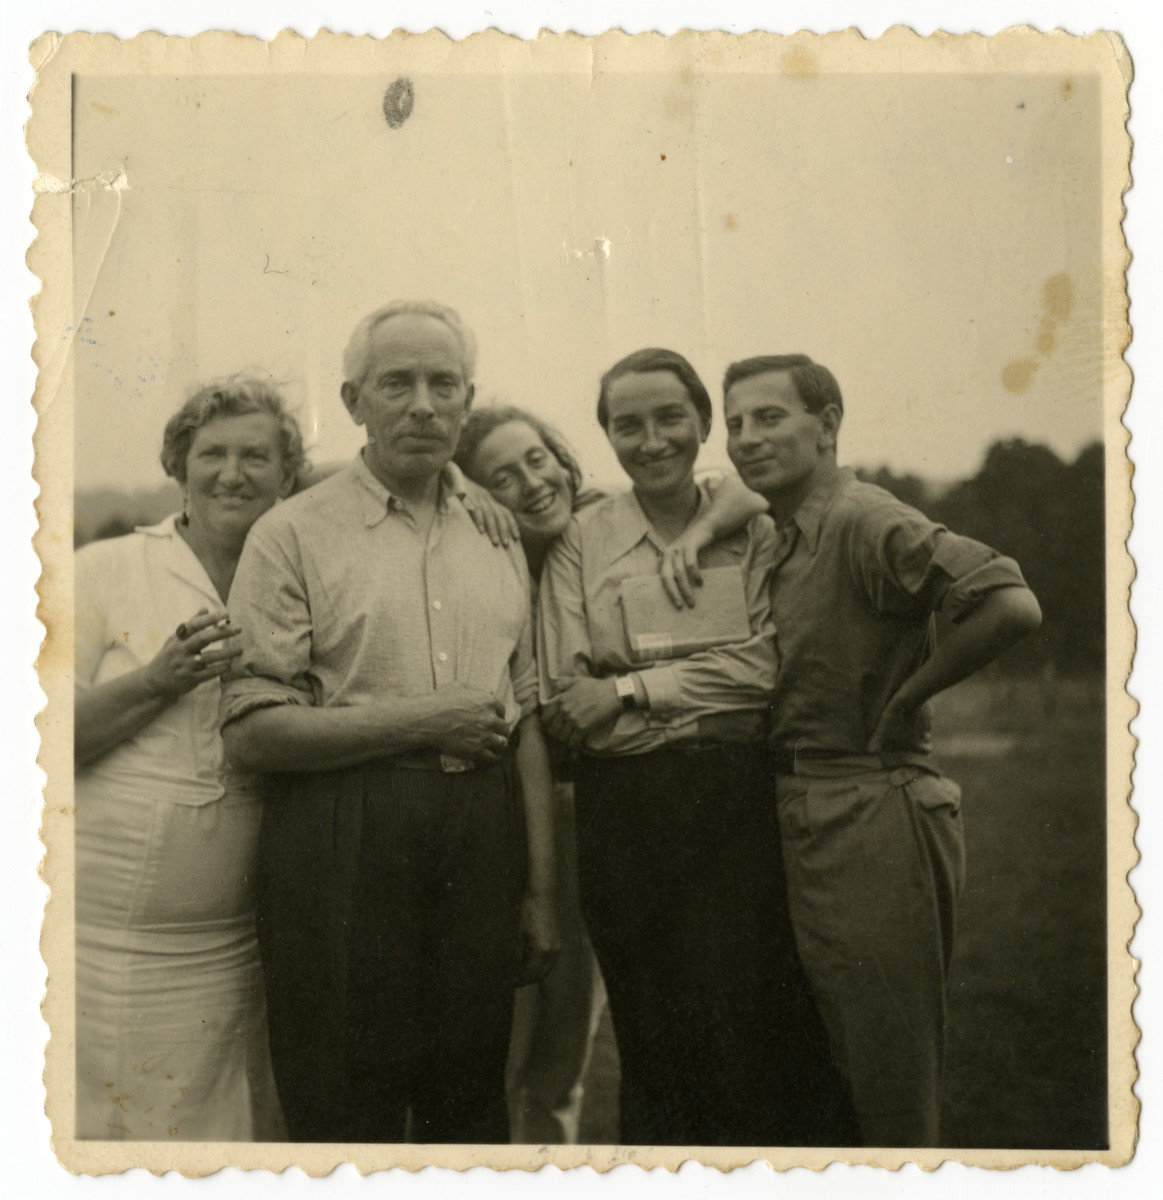 Prewar portrait of members of the the Chason family and friends.  Pictured are Anna and Julius Chason, Gerta Chason Bagriansky, Rivka Smukler (later Osherovitz) and Hirsh Osherovitz.